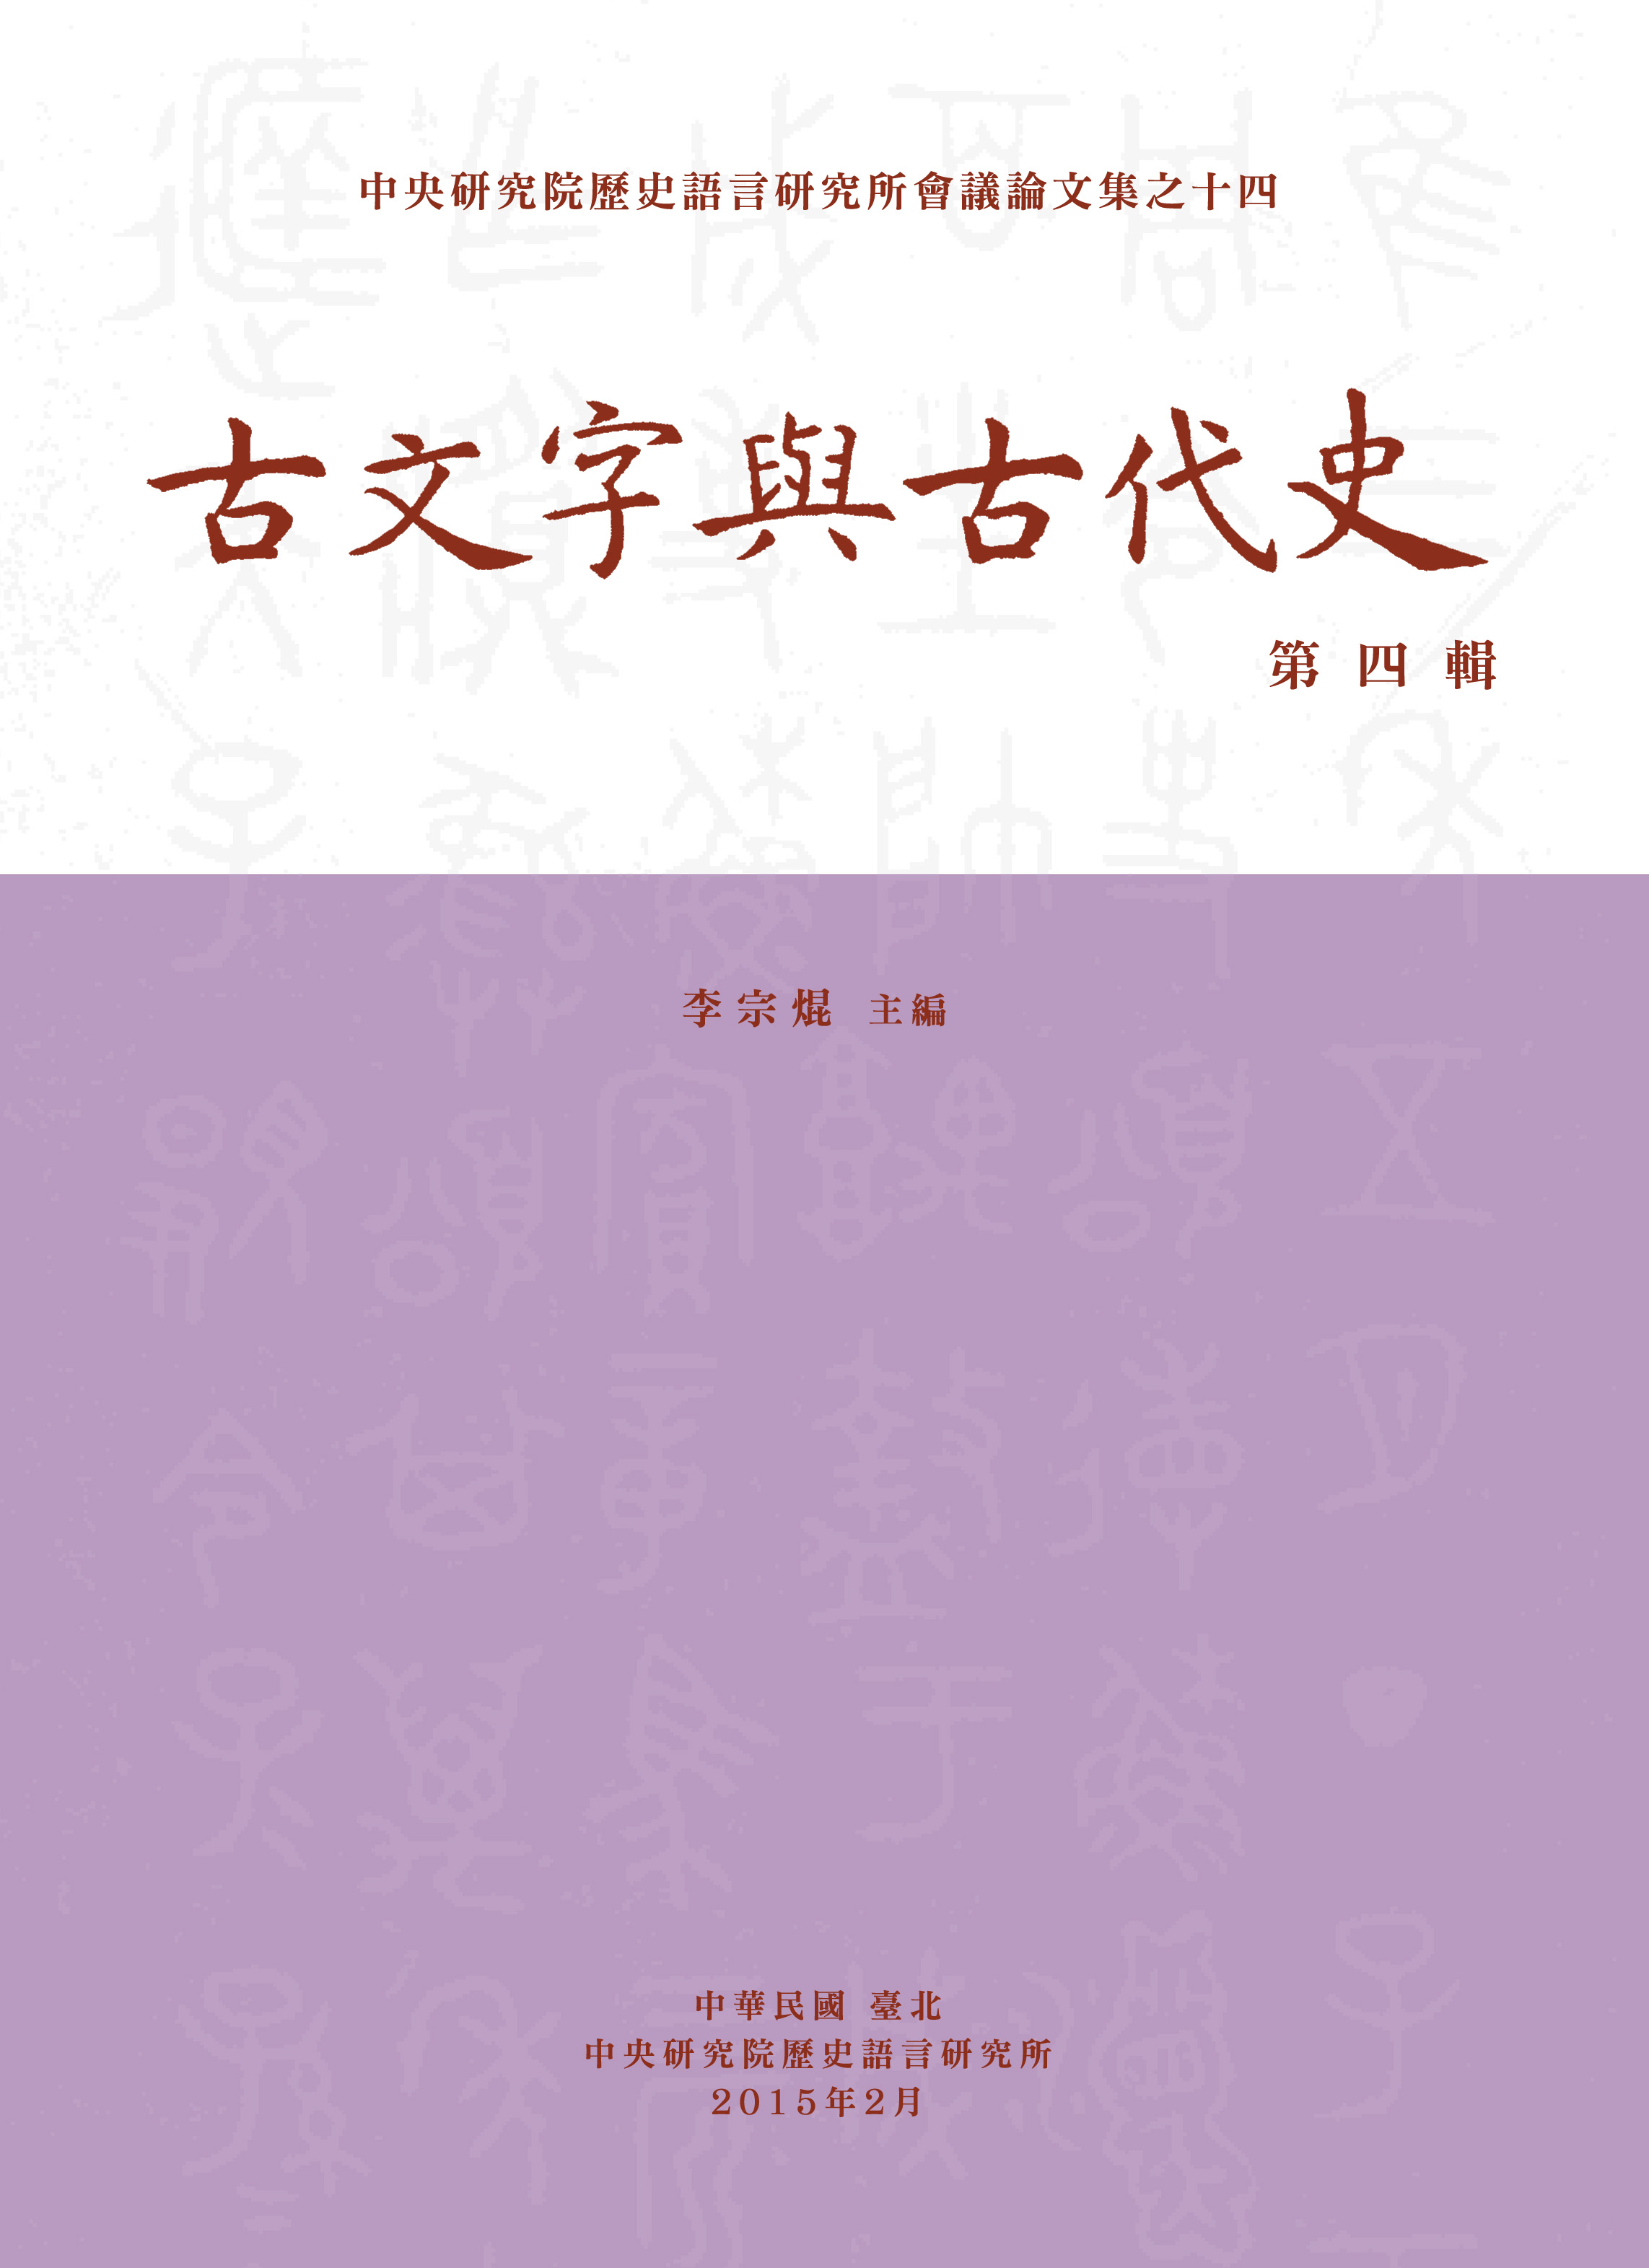 Paleography and Early Chinese History No. 4